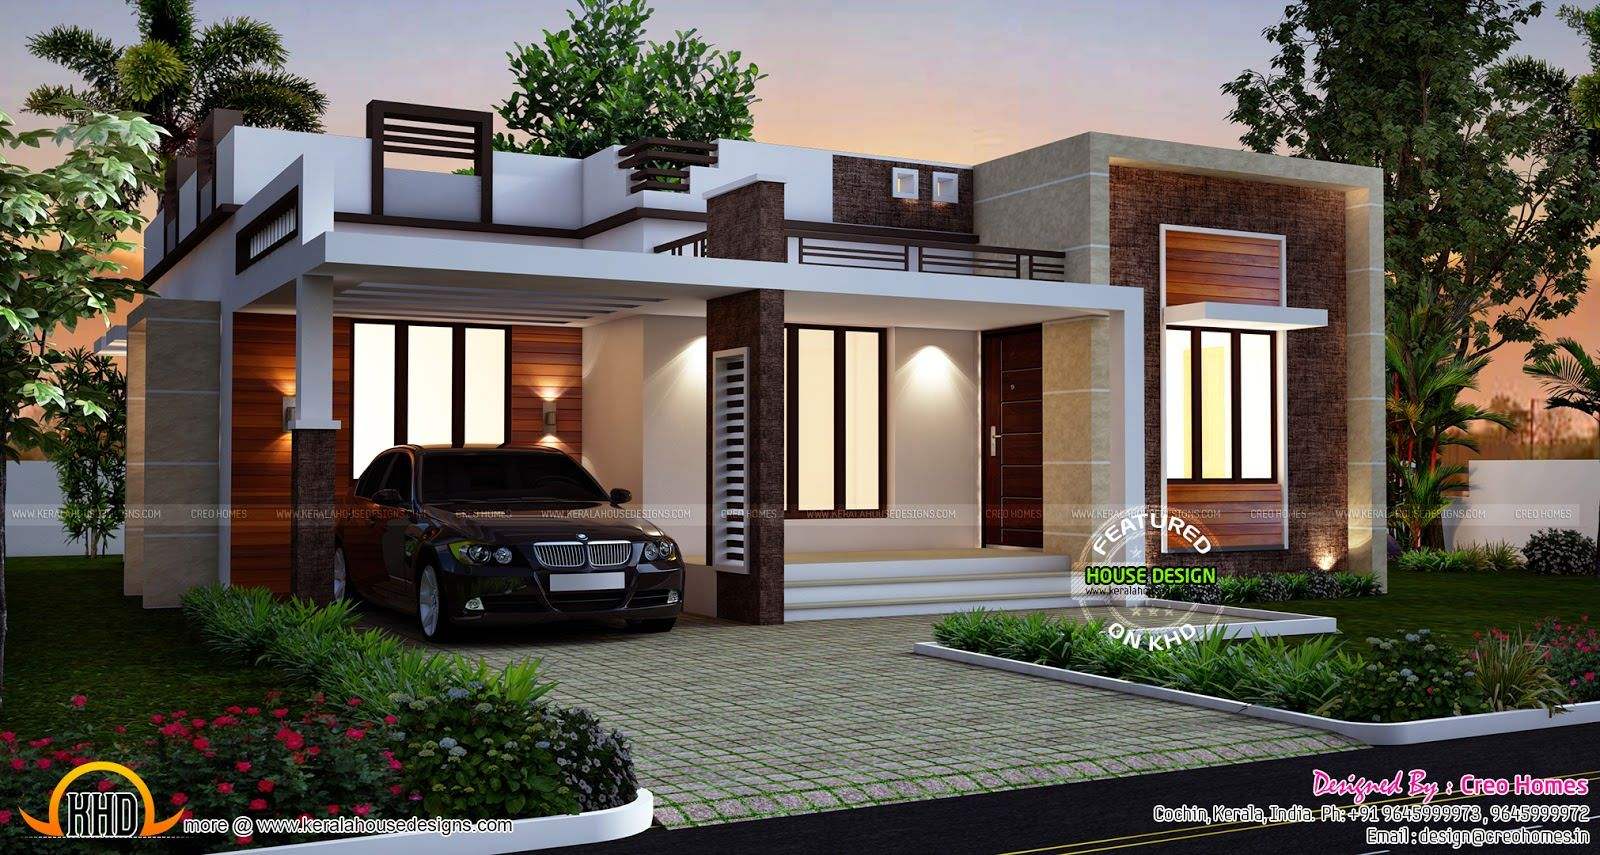 Designs Homes Design Single Story Flat Roof House Plans Kerala House Design House Roof Design Flat Roof House